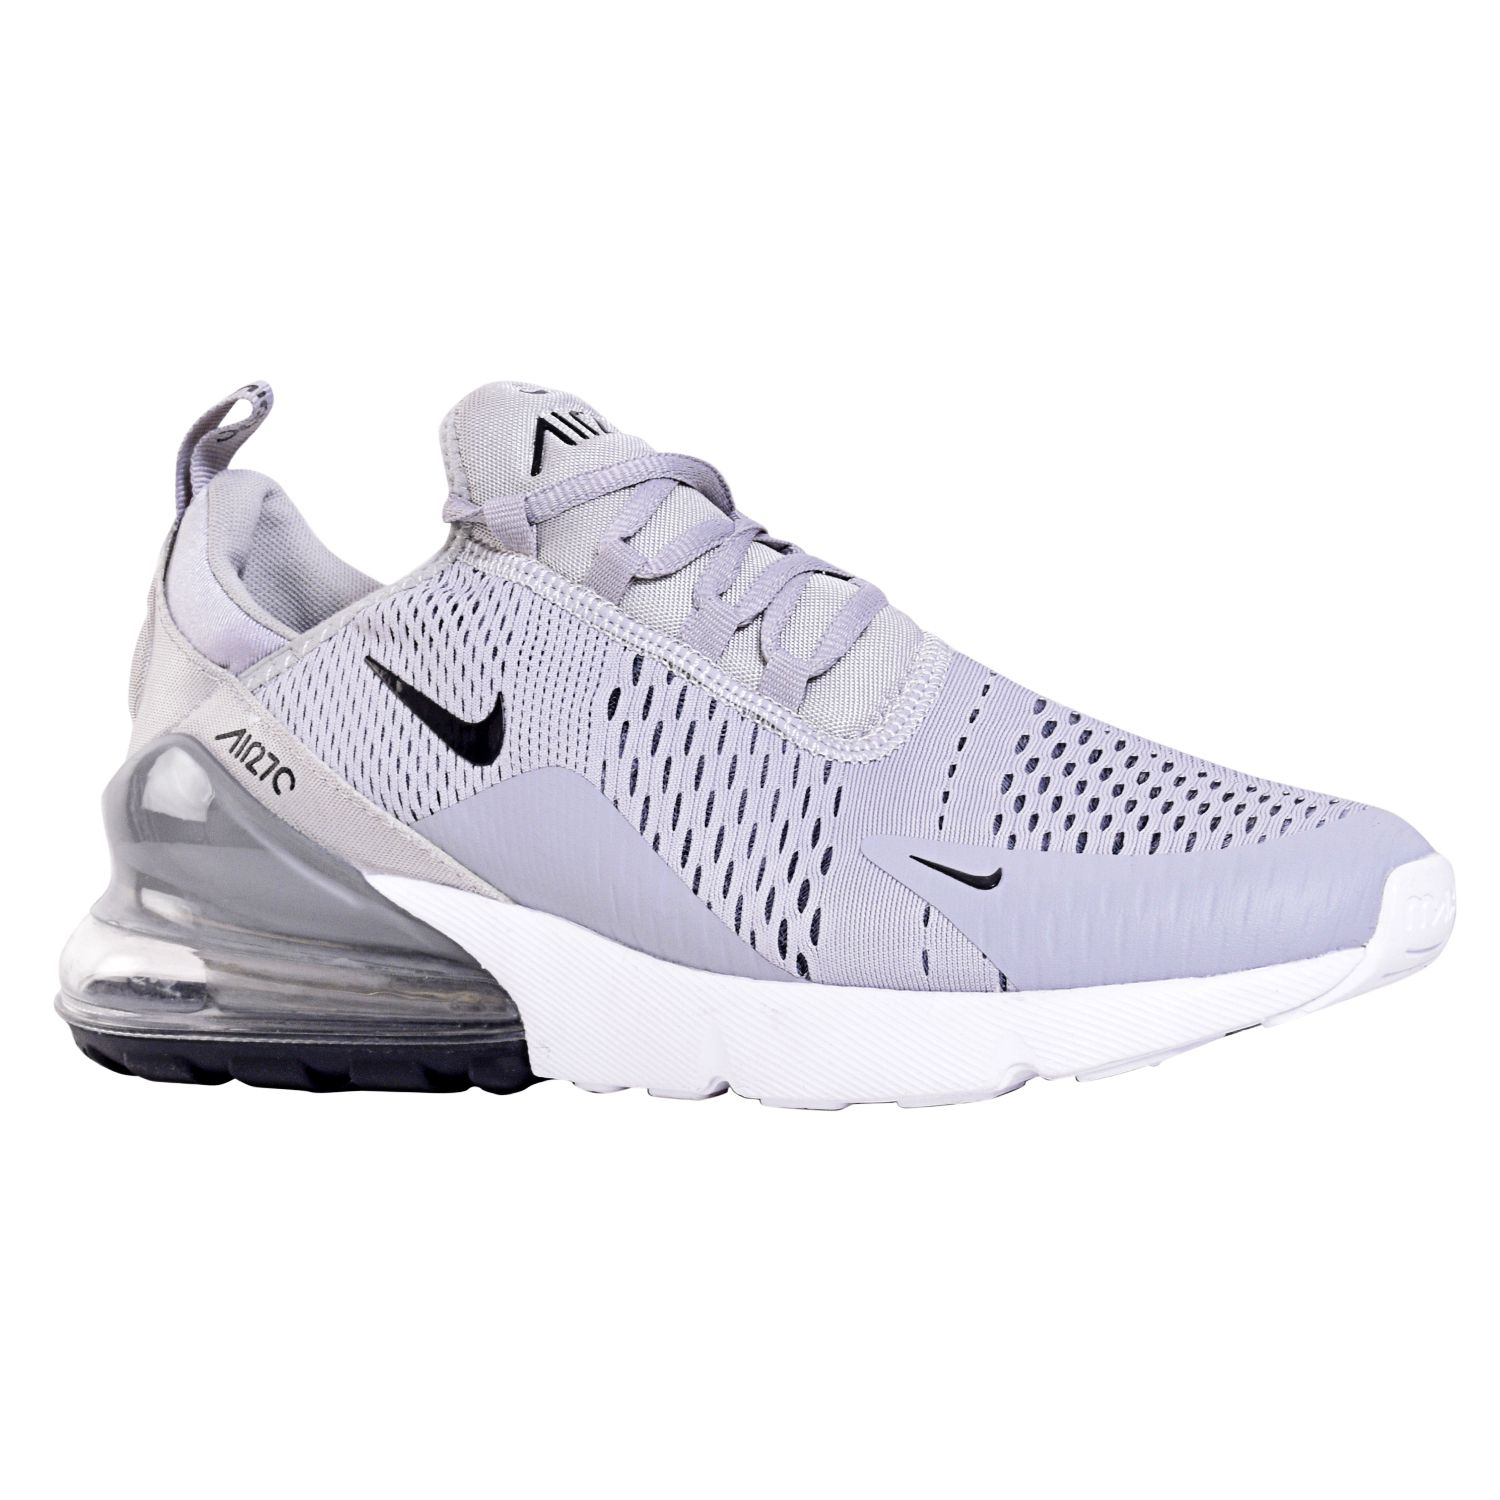 Nike AIR MAX 270 Silver Running Shoes - Buy Nike AIR MAX 270 Silver Running  Shoes Online at Best Prices in India on Snapdeal 66d9776ea